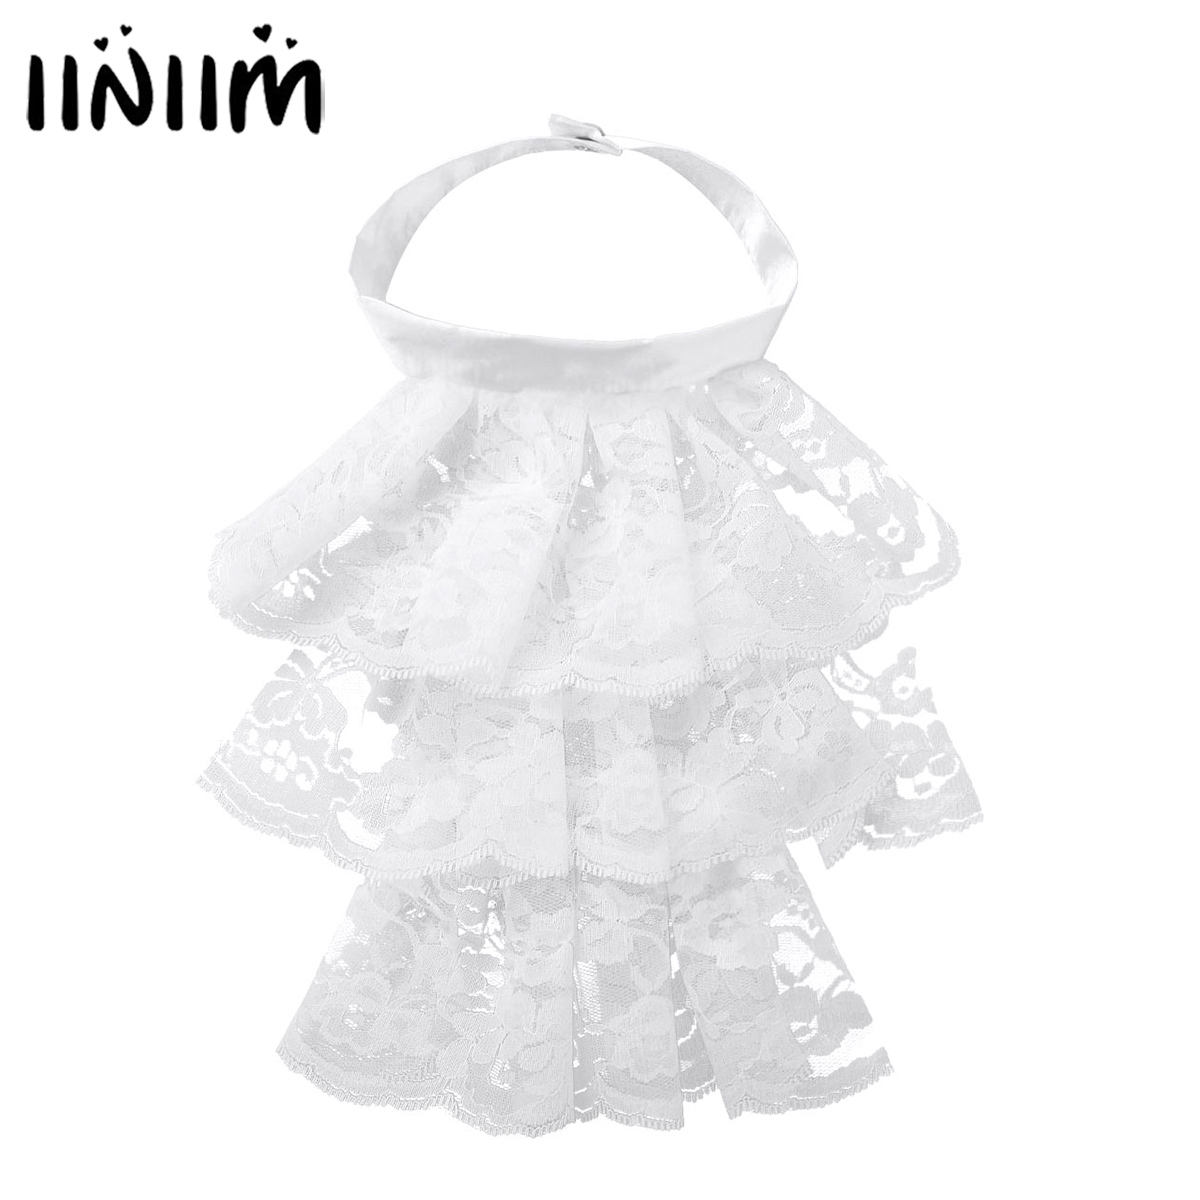 Iiniim Womens Femme Victorian Renaissance Detachable Ruffled Lace Jabot Neck Collar Stage Party Steampunk Costume Accessory